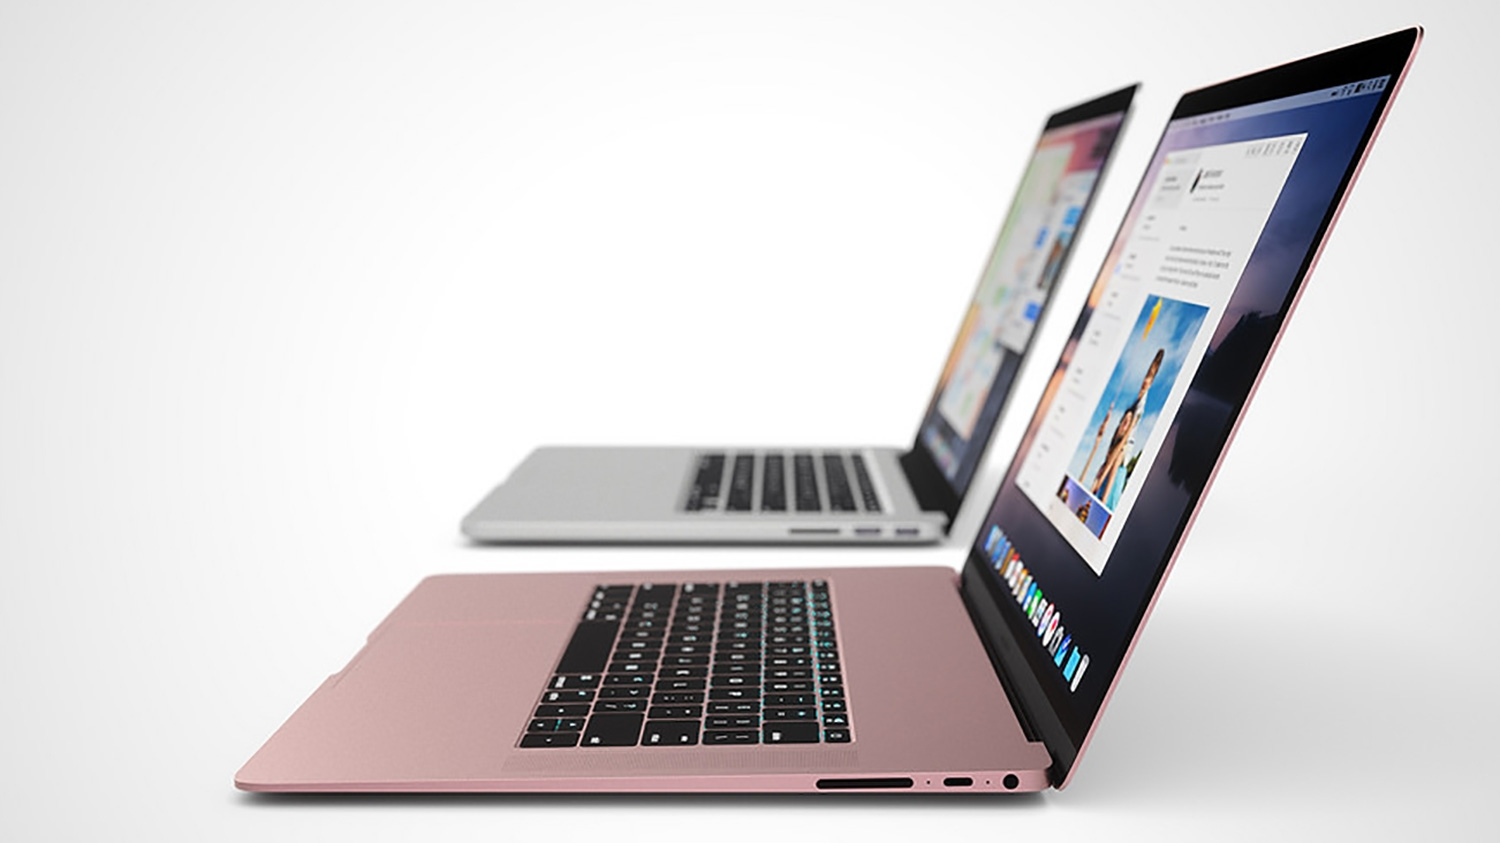 Apple 39 s new macbook pro 39 coming in october 39 news for New apple book